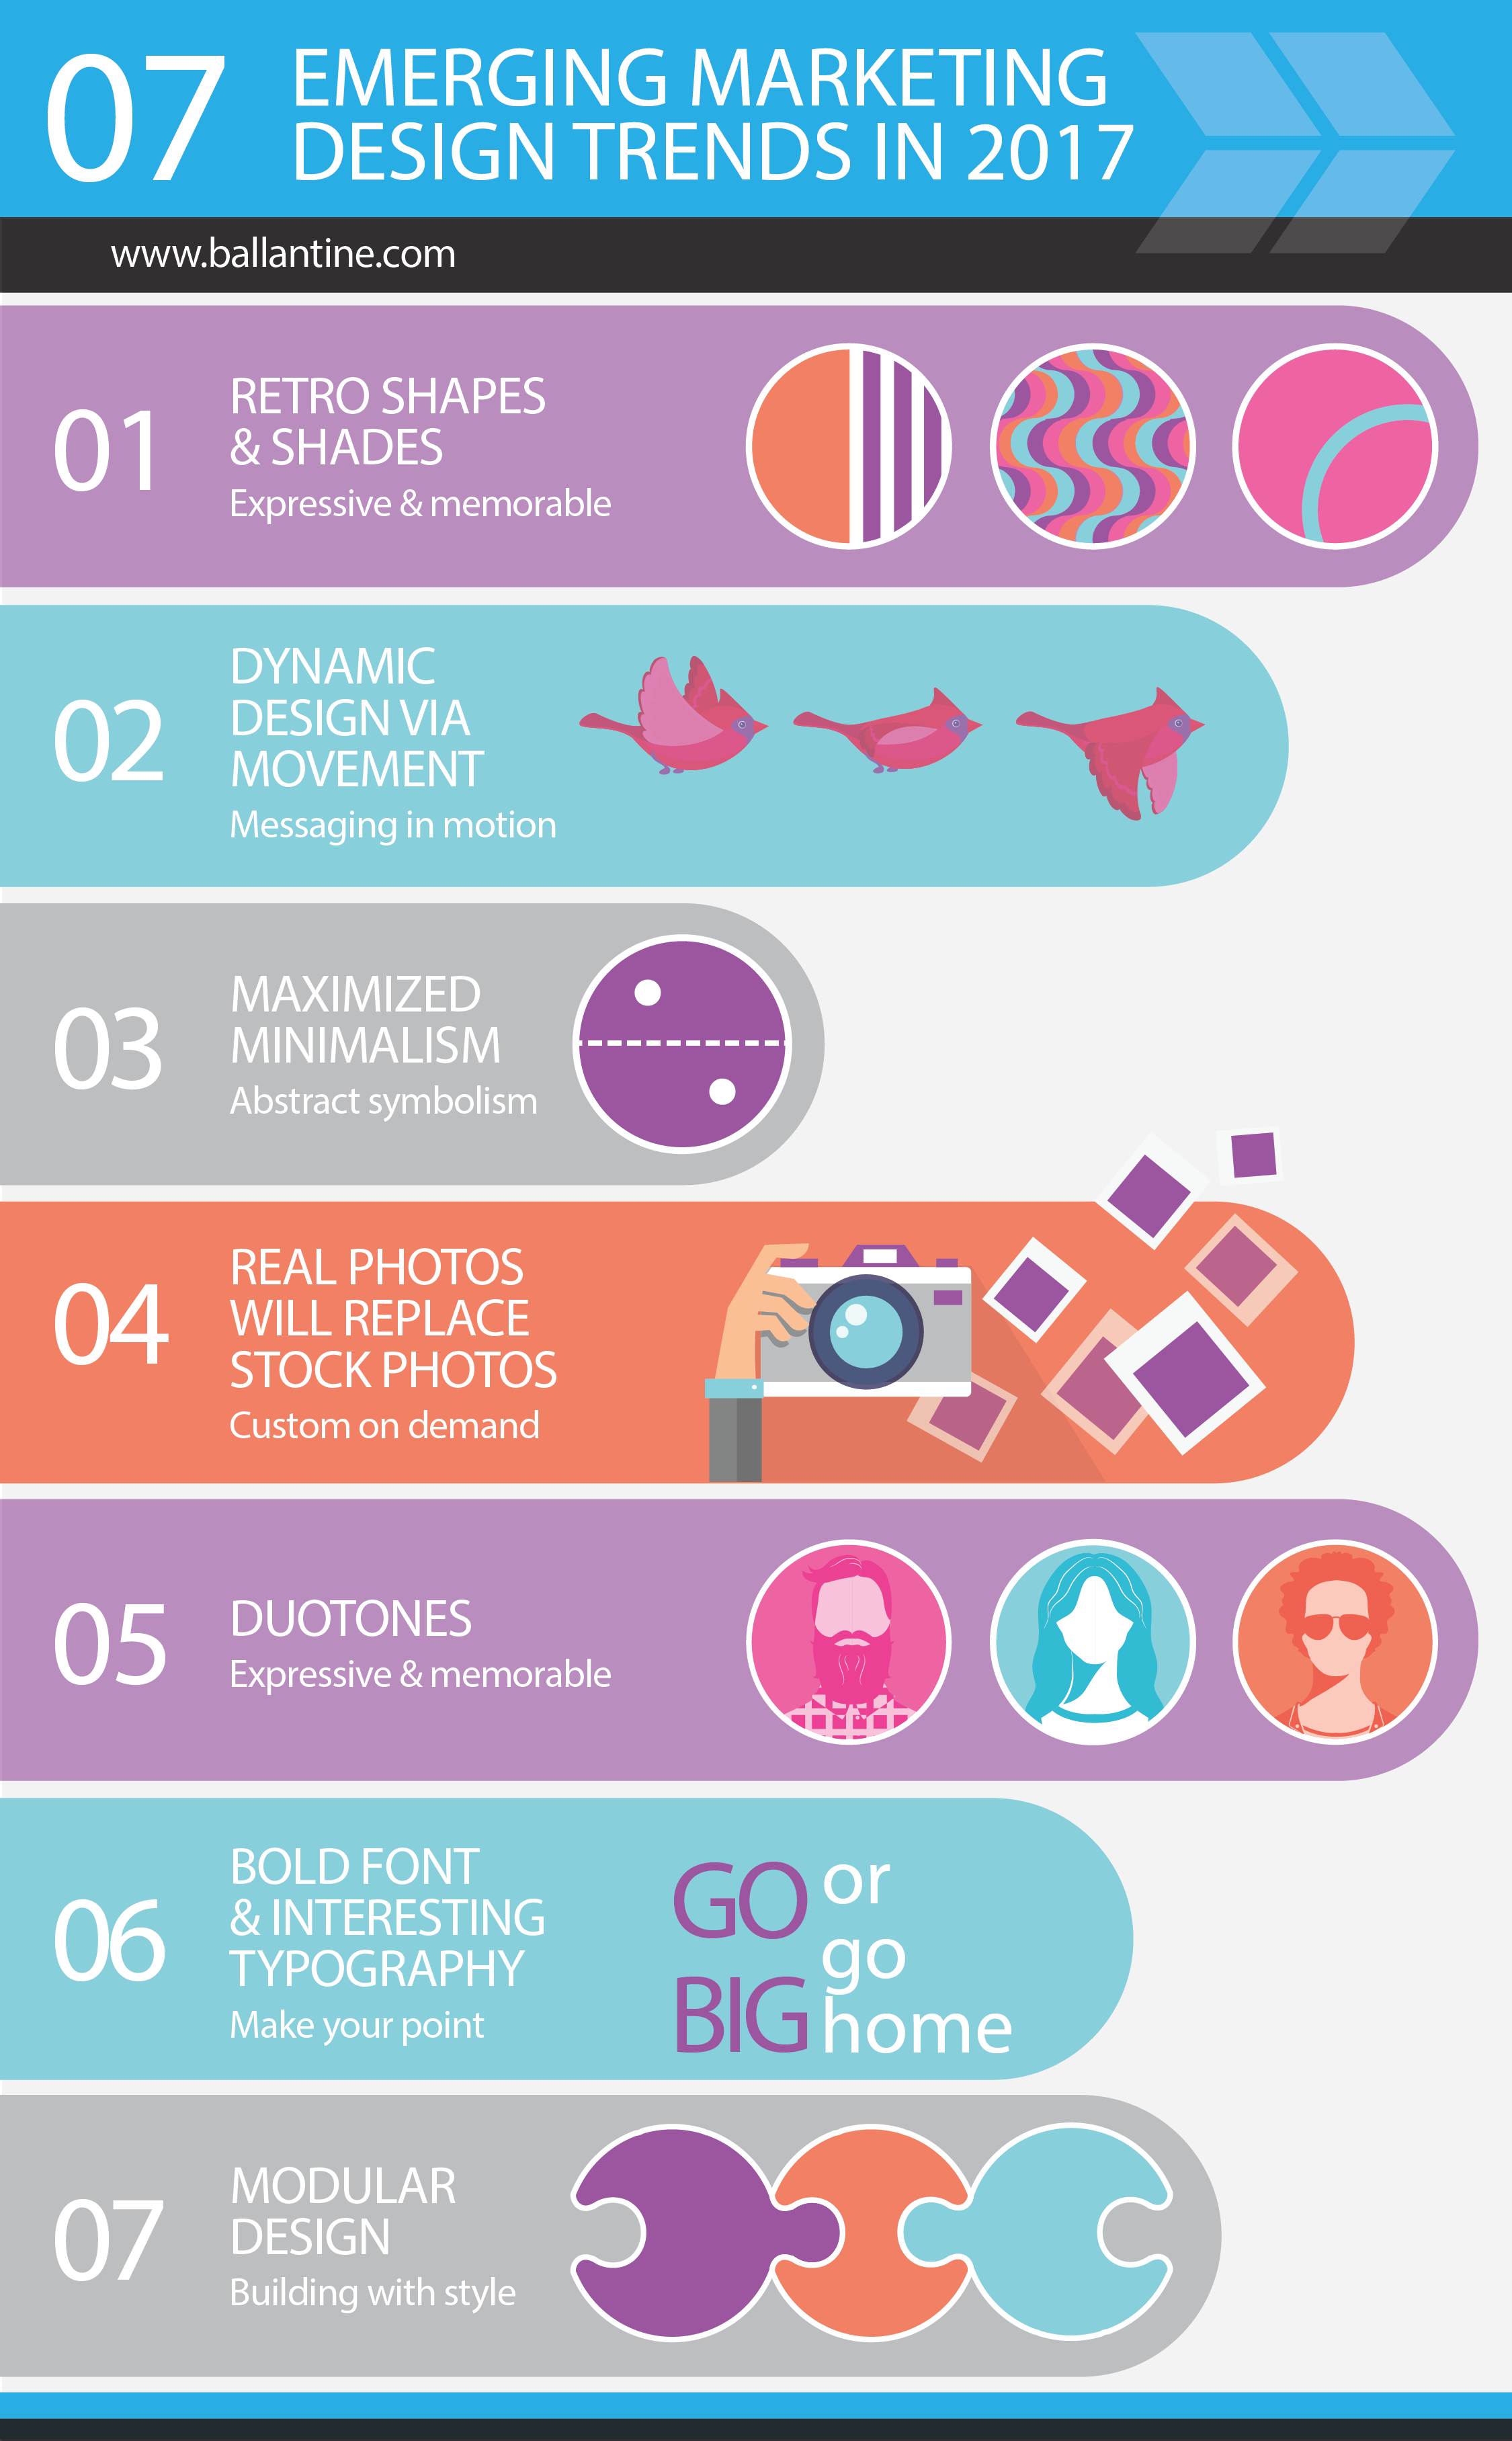 7 Emerging Marketing Design Trends in 2017 [Infographic]